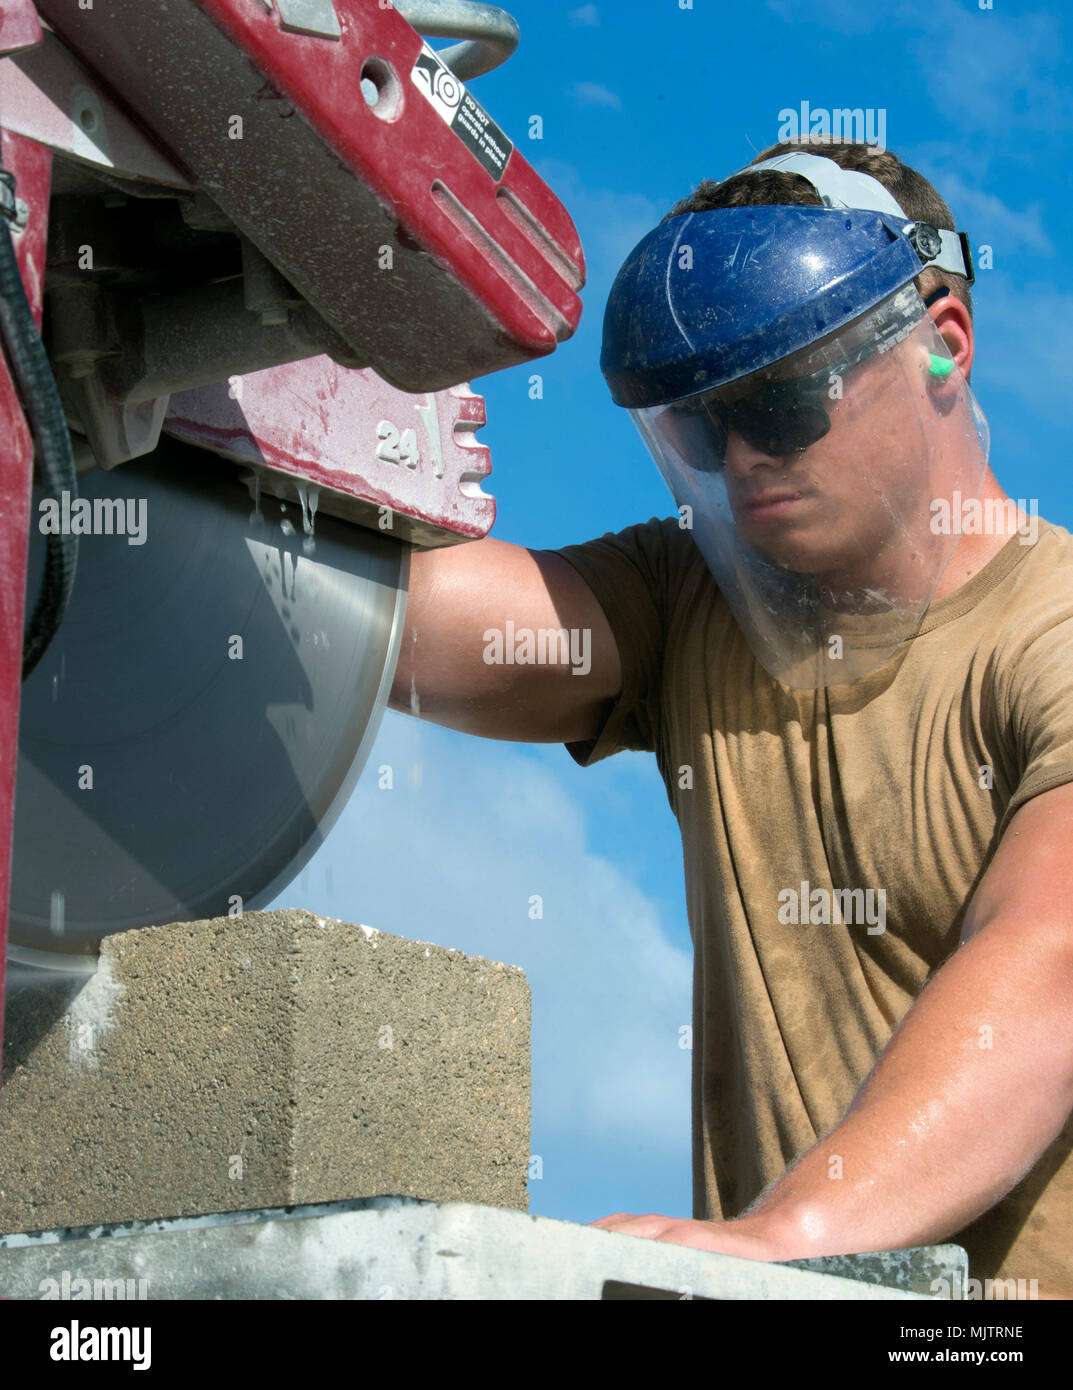 Shower Block Stock Photos & Shower Block Stock Images - Alamy